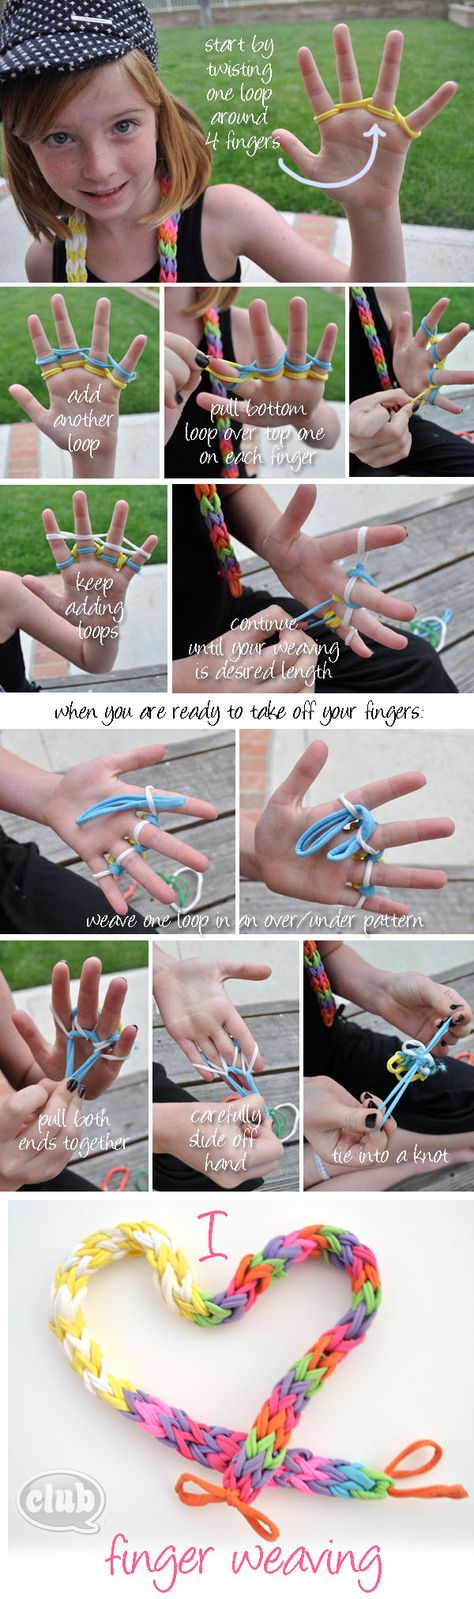 finger weaving tutorial. We used to make scrunchies like this.